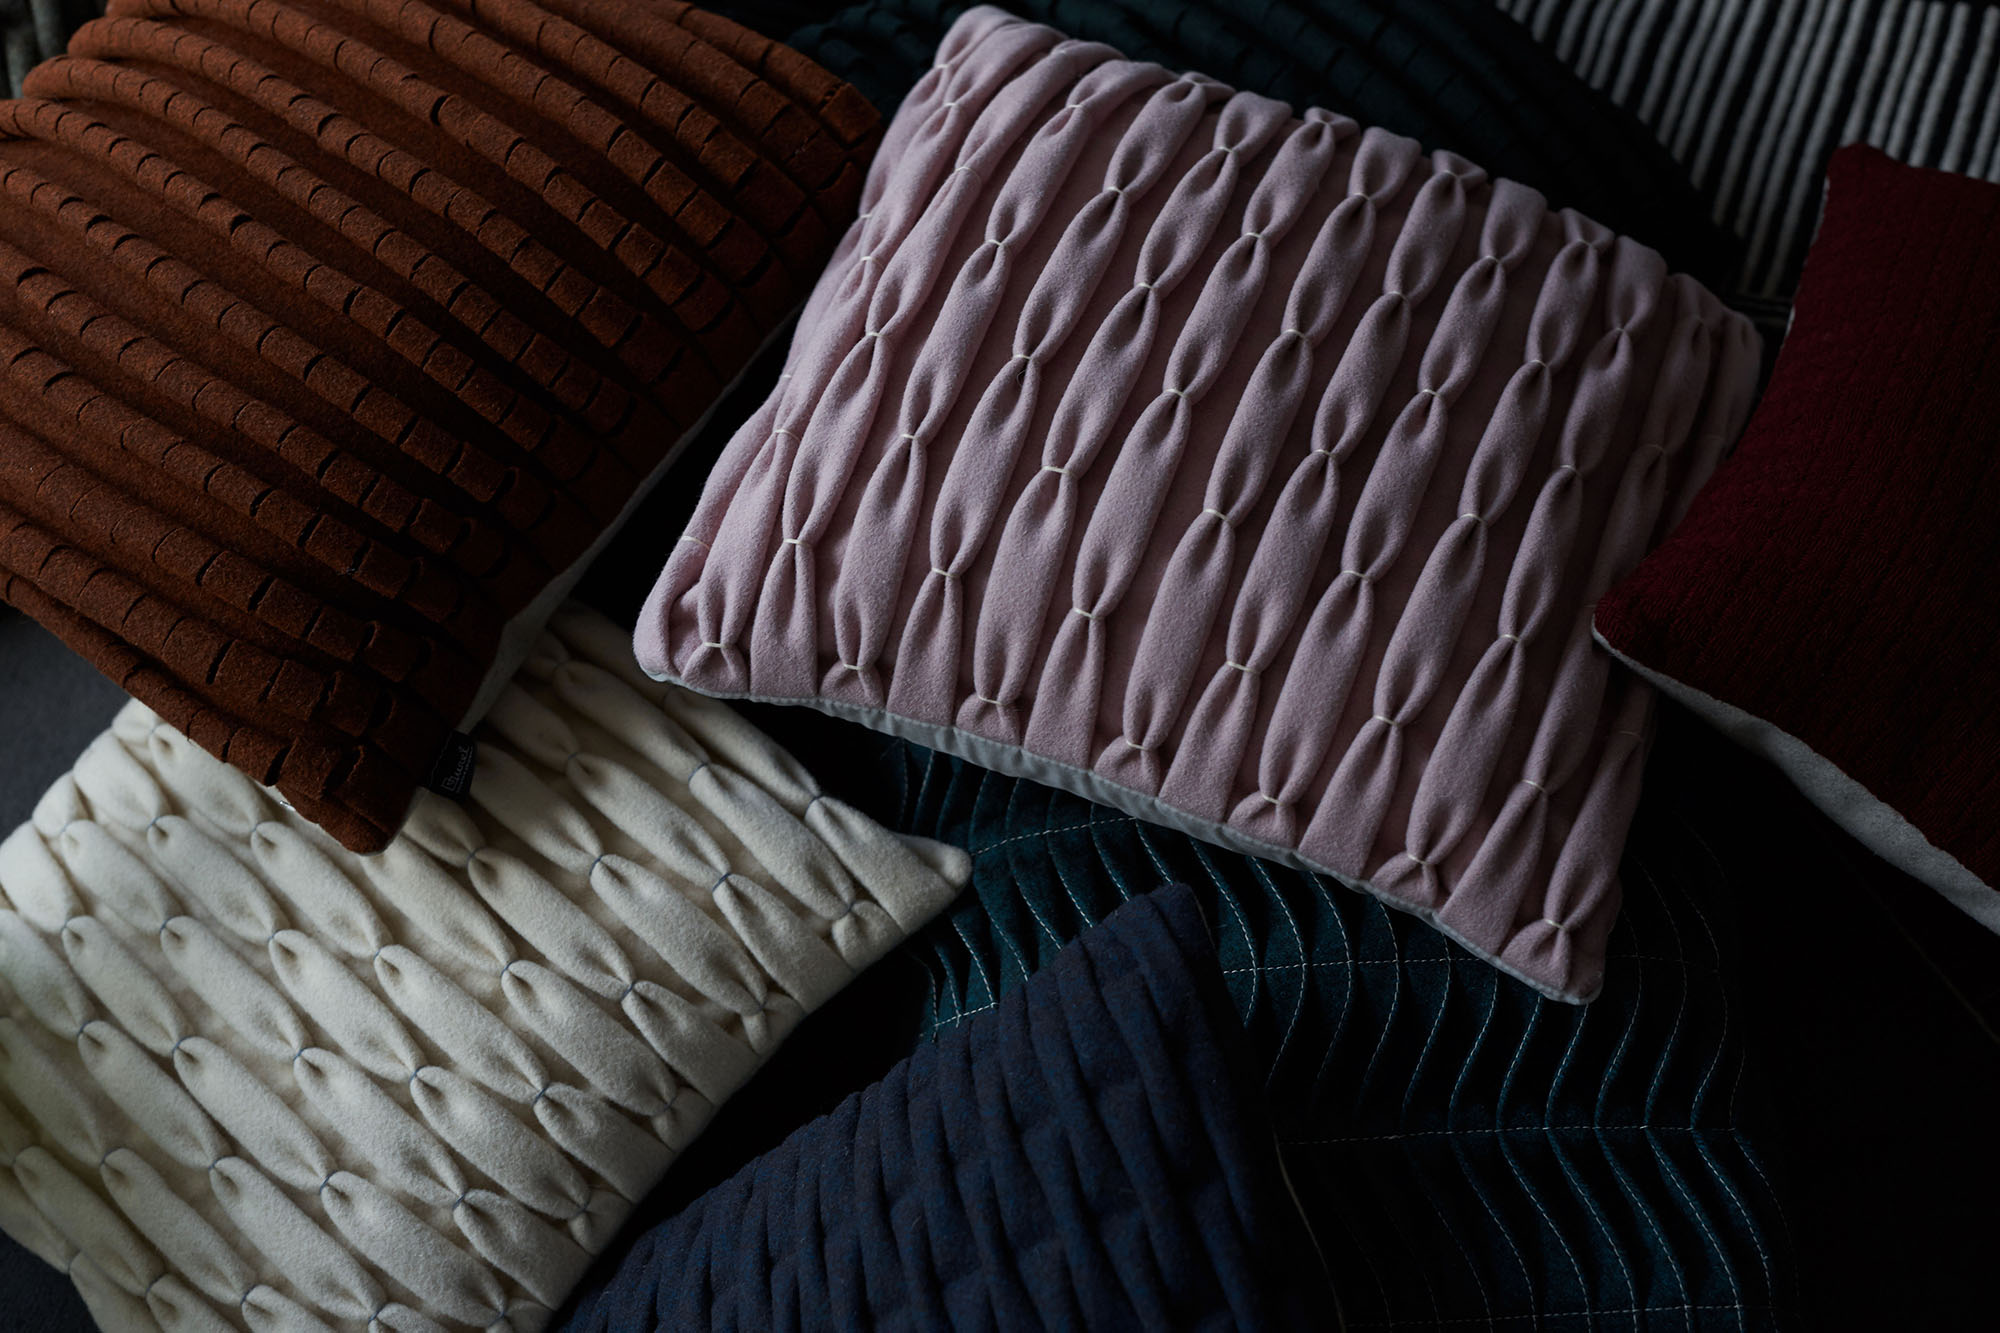 Figgoscope Curates burel fabric cushions Photographer: Jonathon Griggs